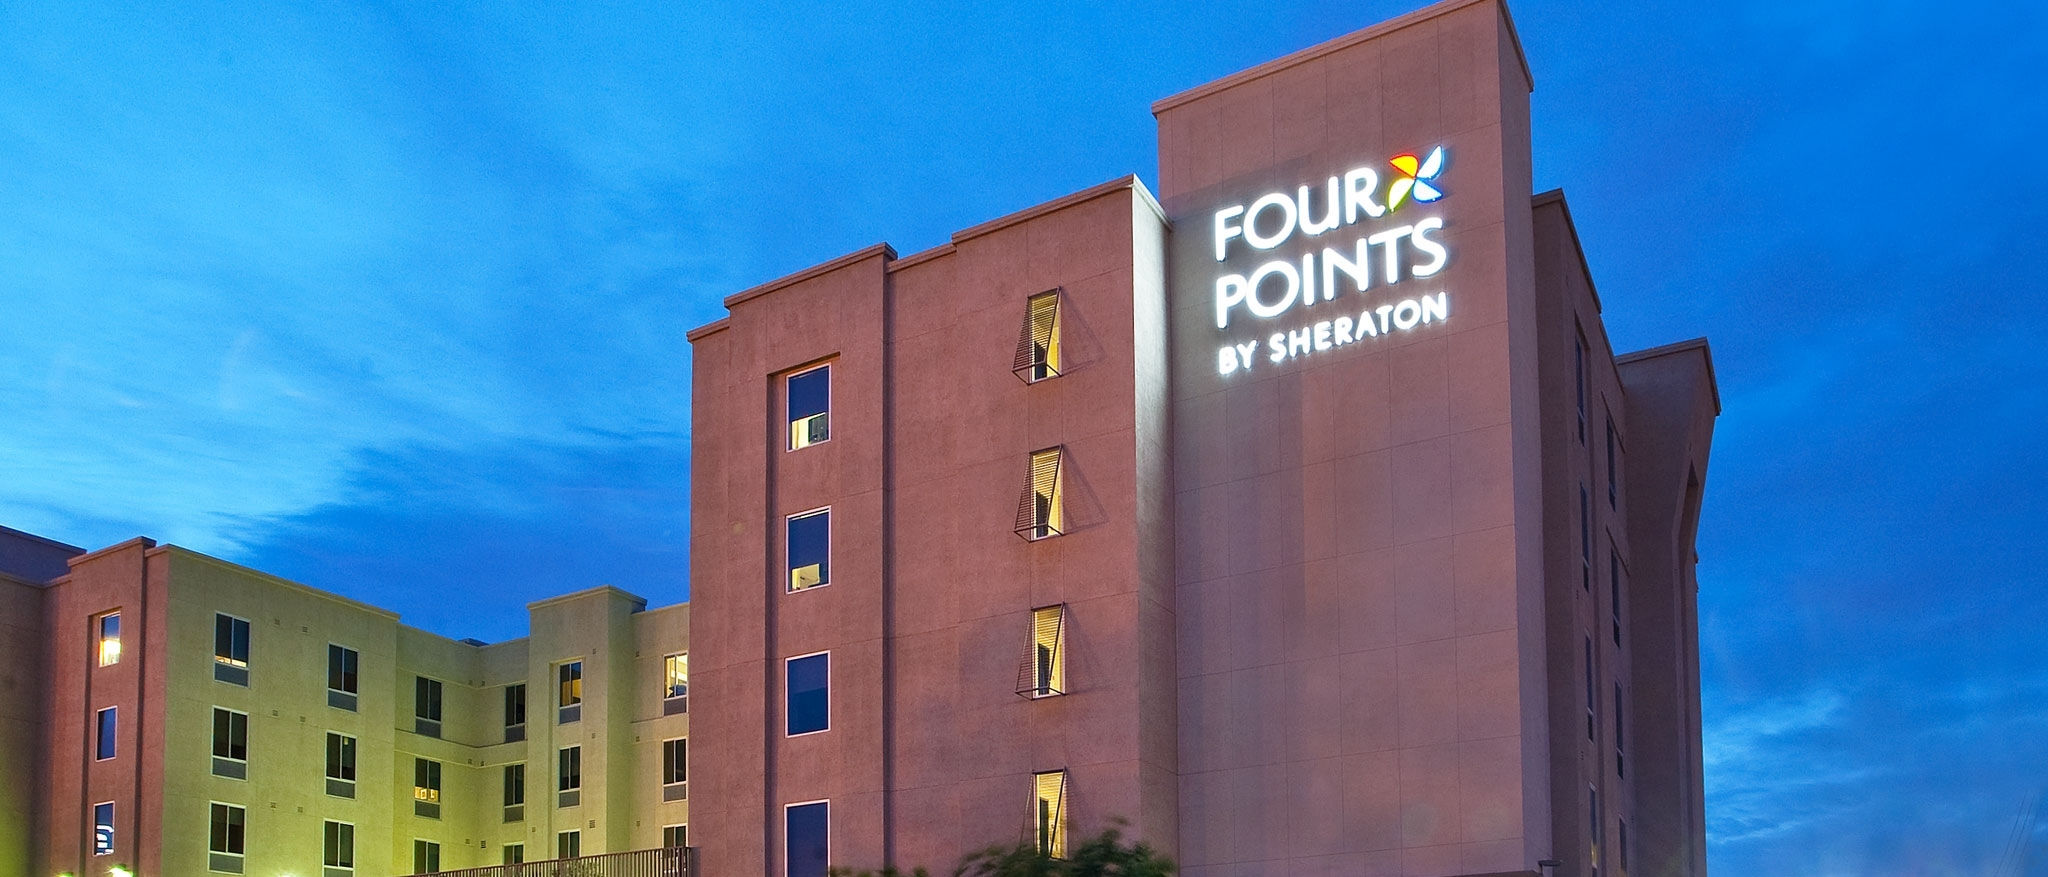 Four Points by Sheraton Las Vegas East Flamingo - Hotel Exterior